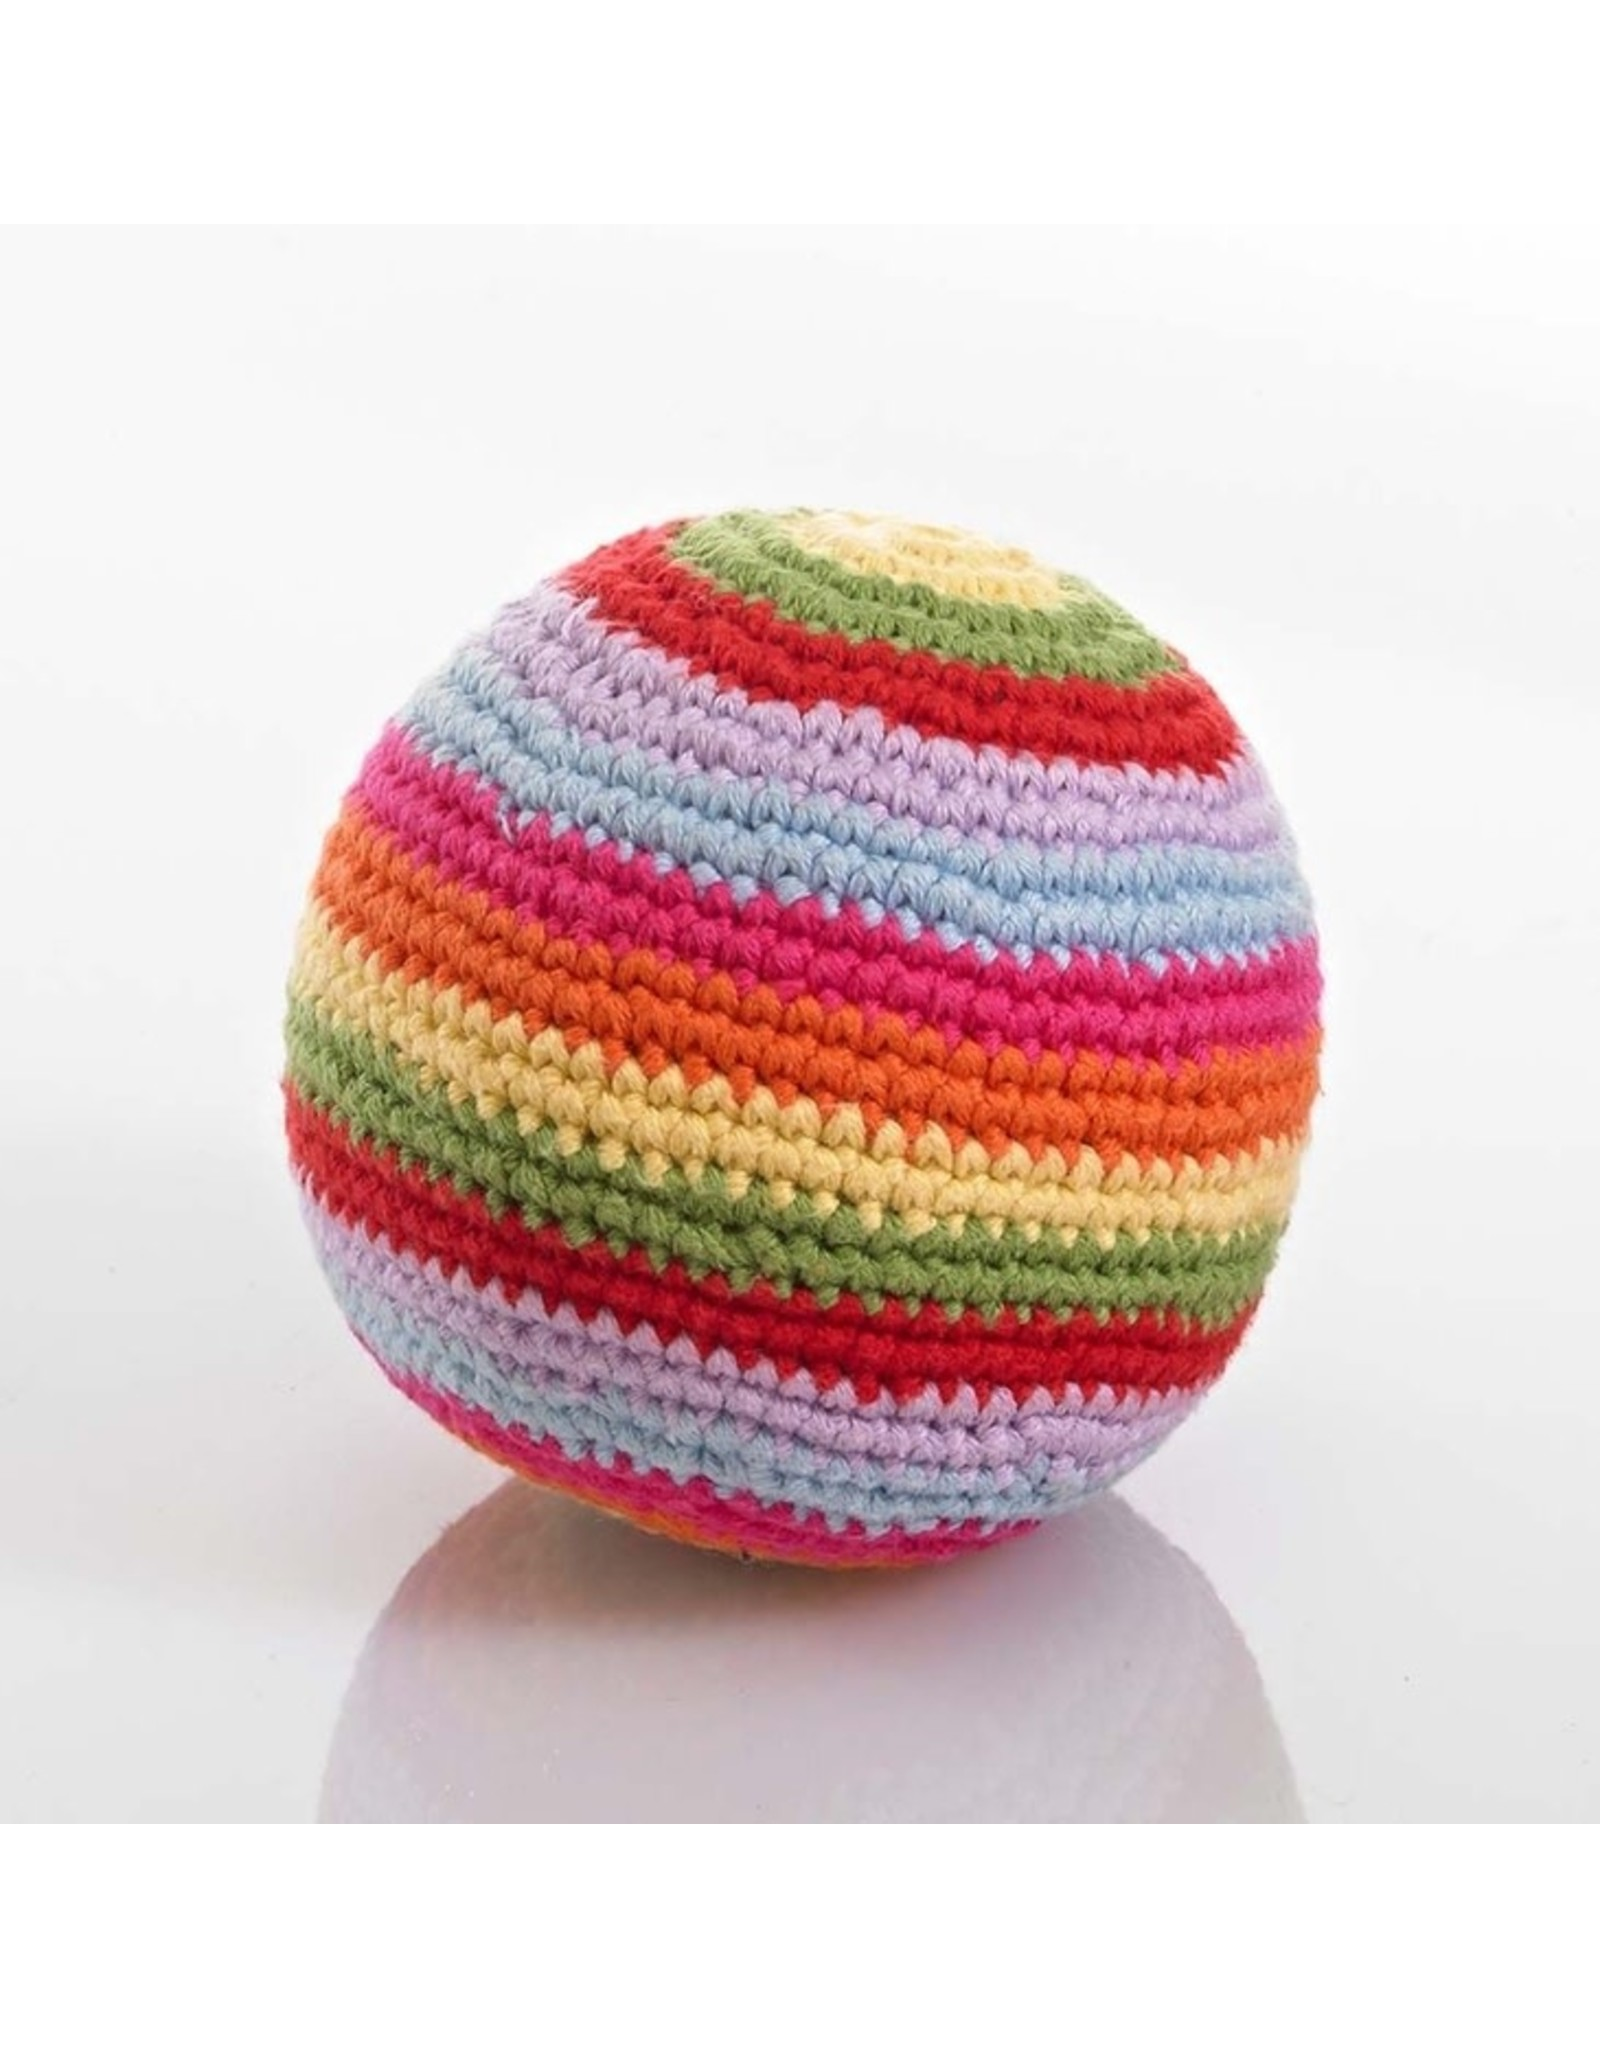 Pebble Striped Ball Rattle, Bangladesh